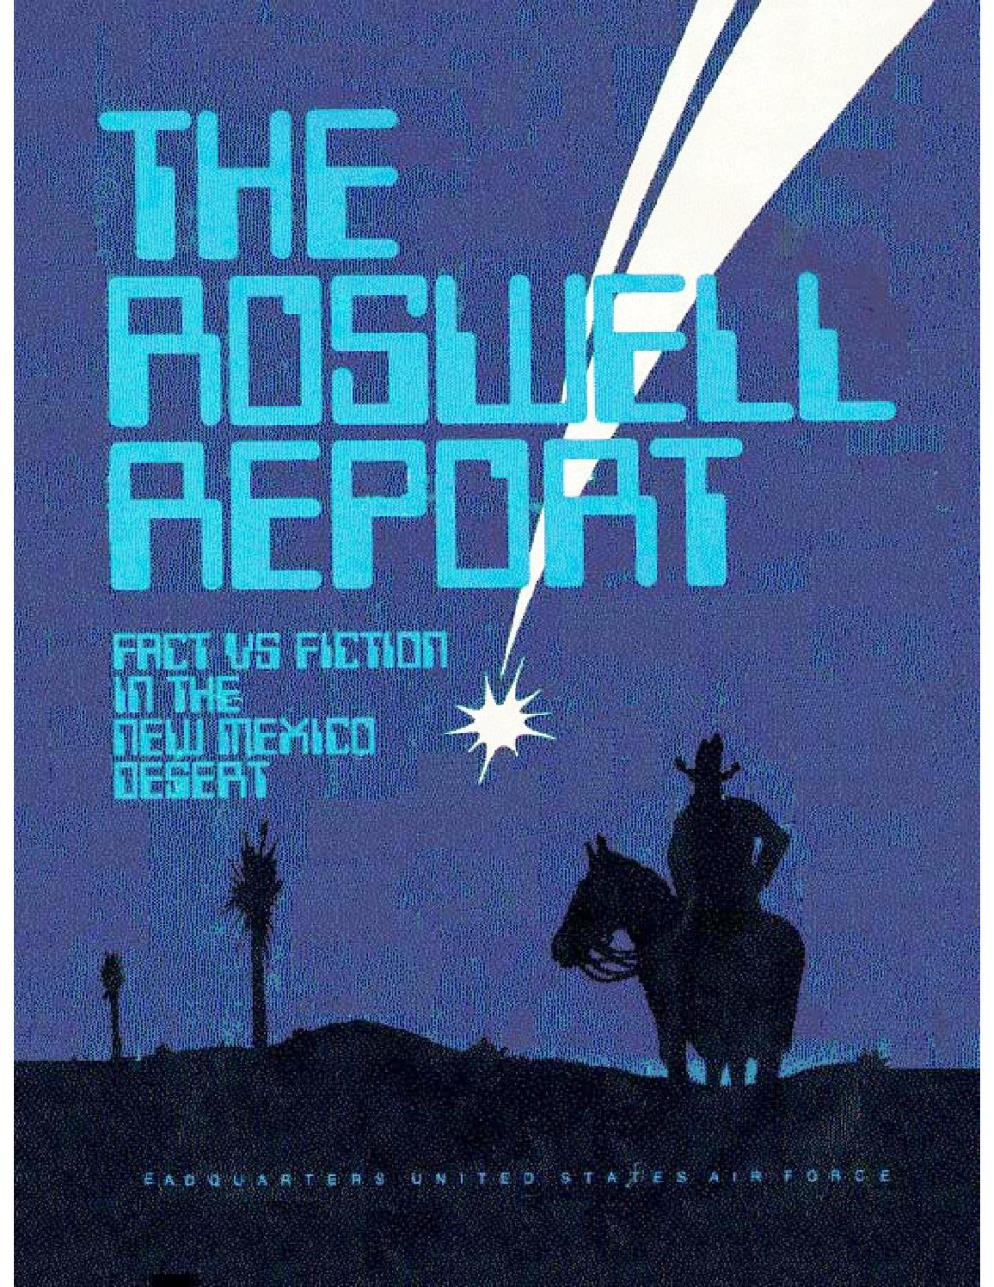 roswell report fact versus fiction.jpg